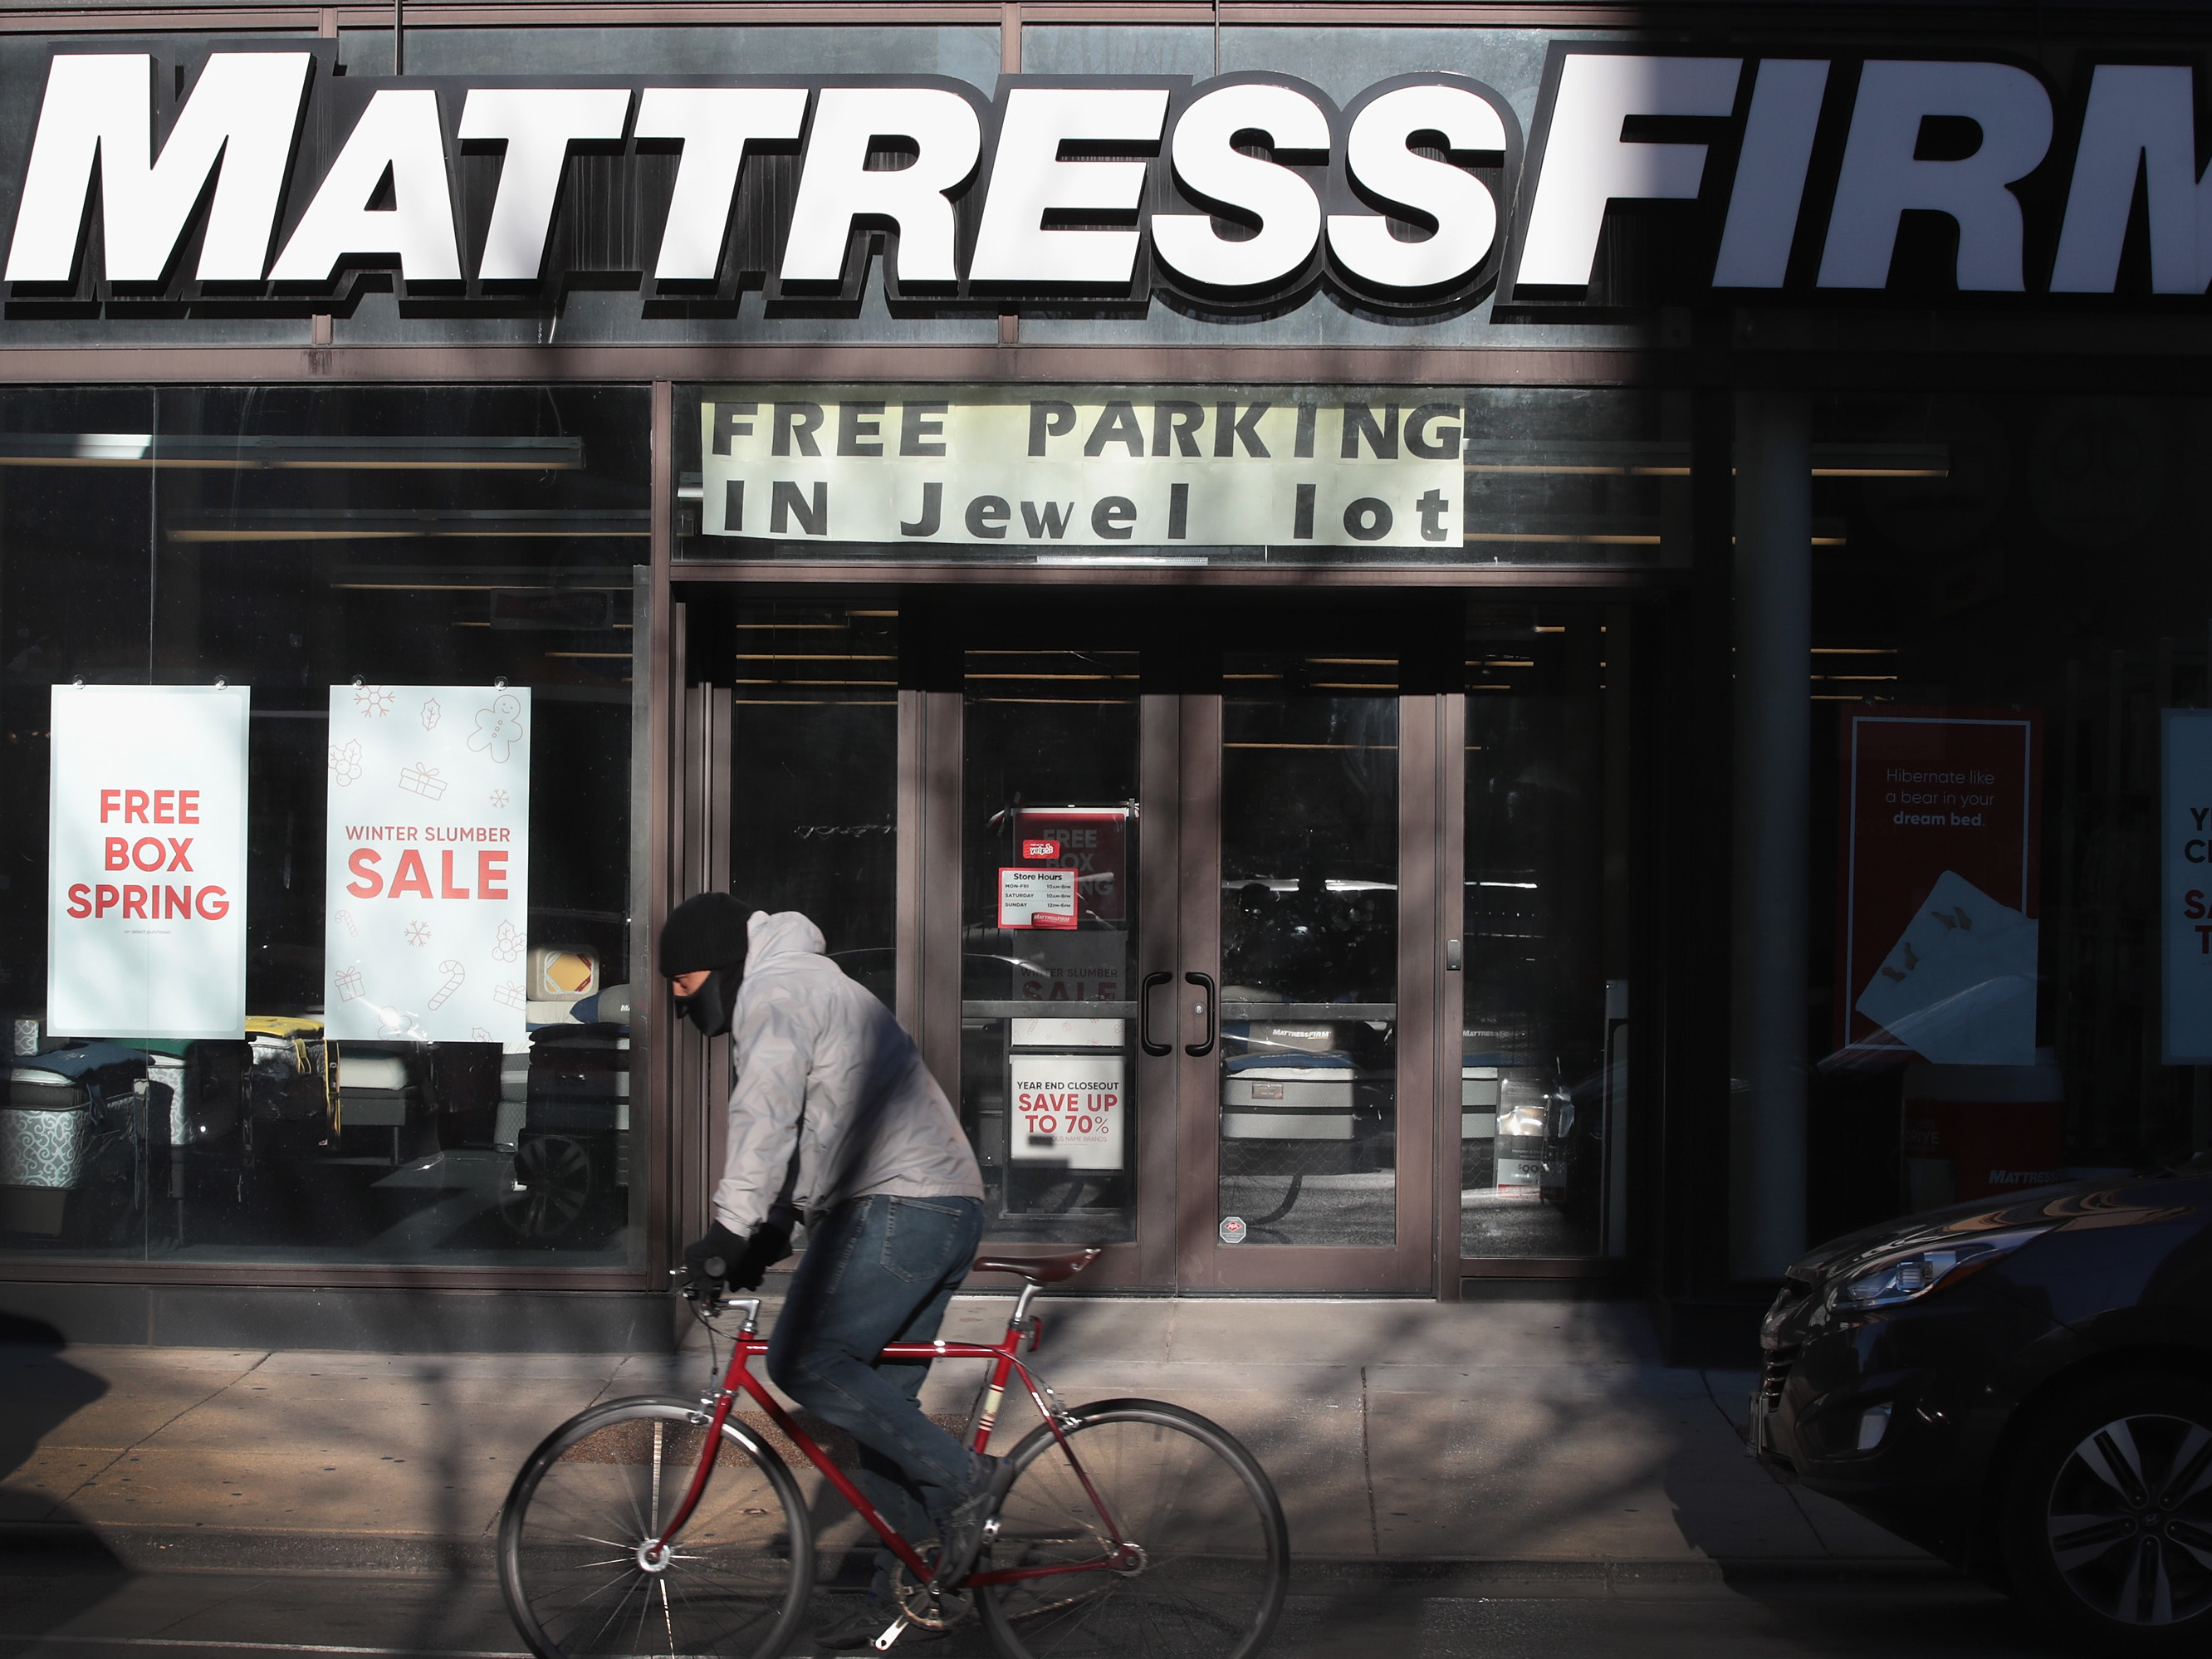 Why Are There So Many Mattress Stores?